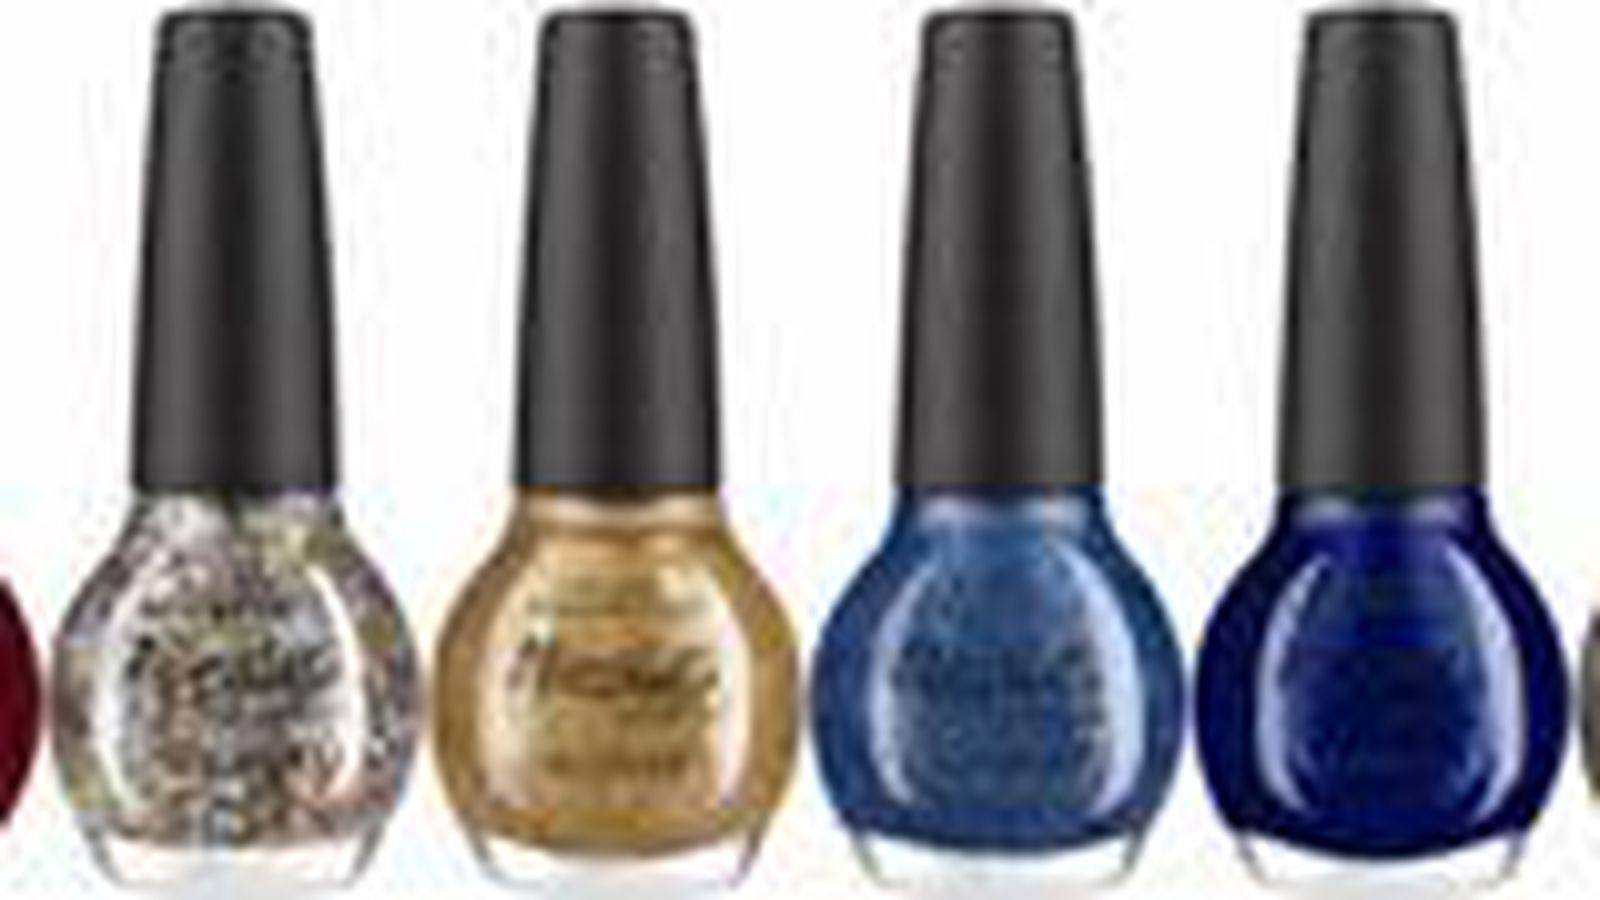 UNVEILED: The Kardashian for Nicole by OPI Nail Polish Colors